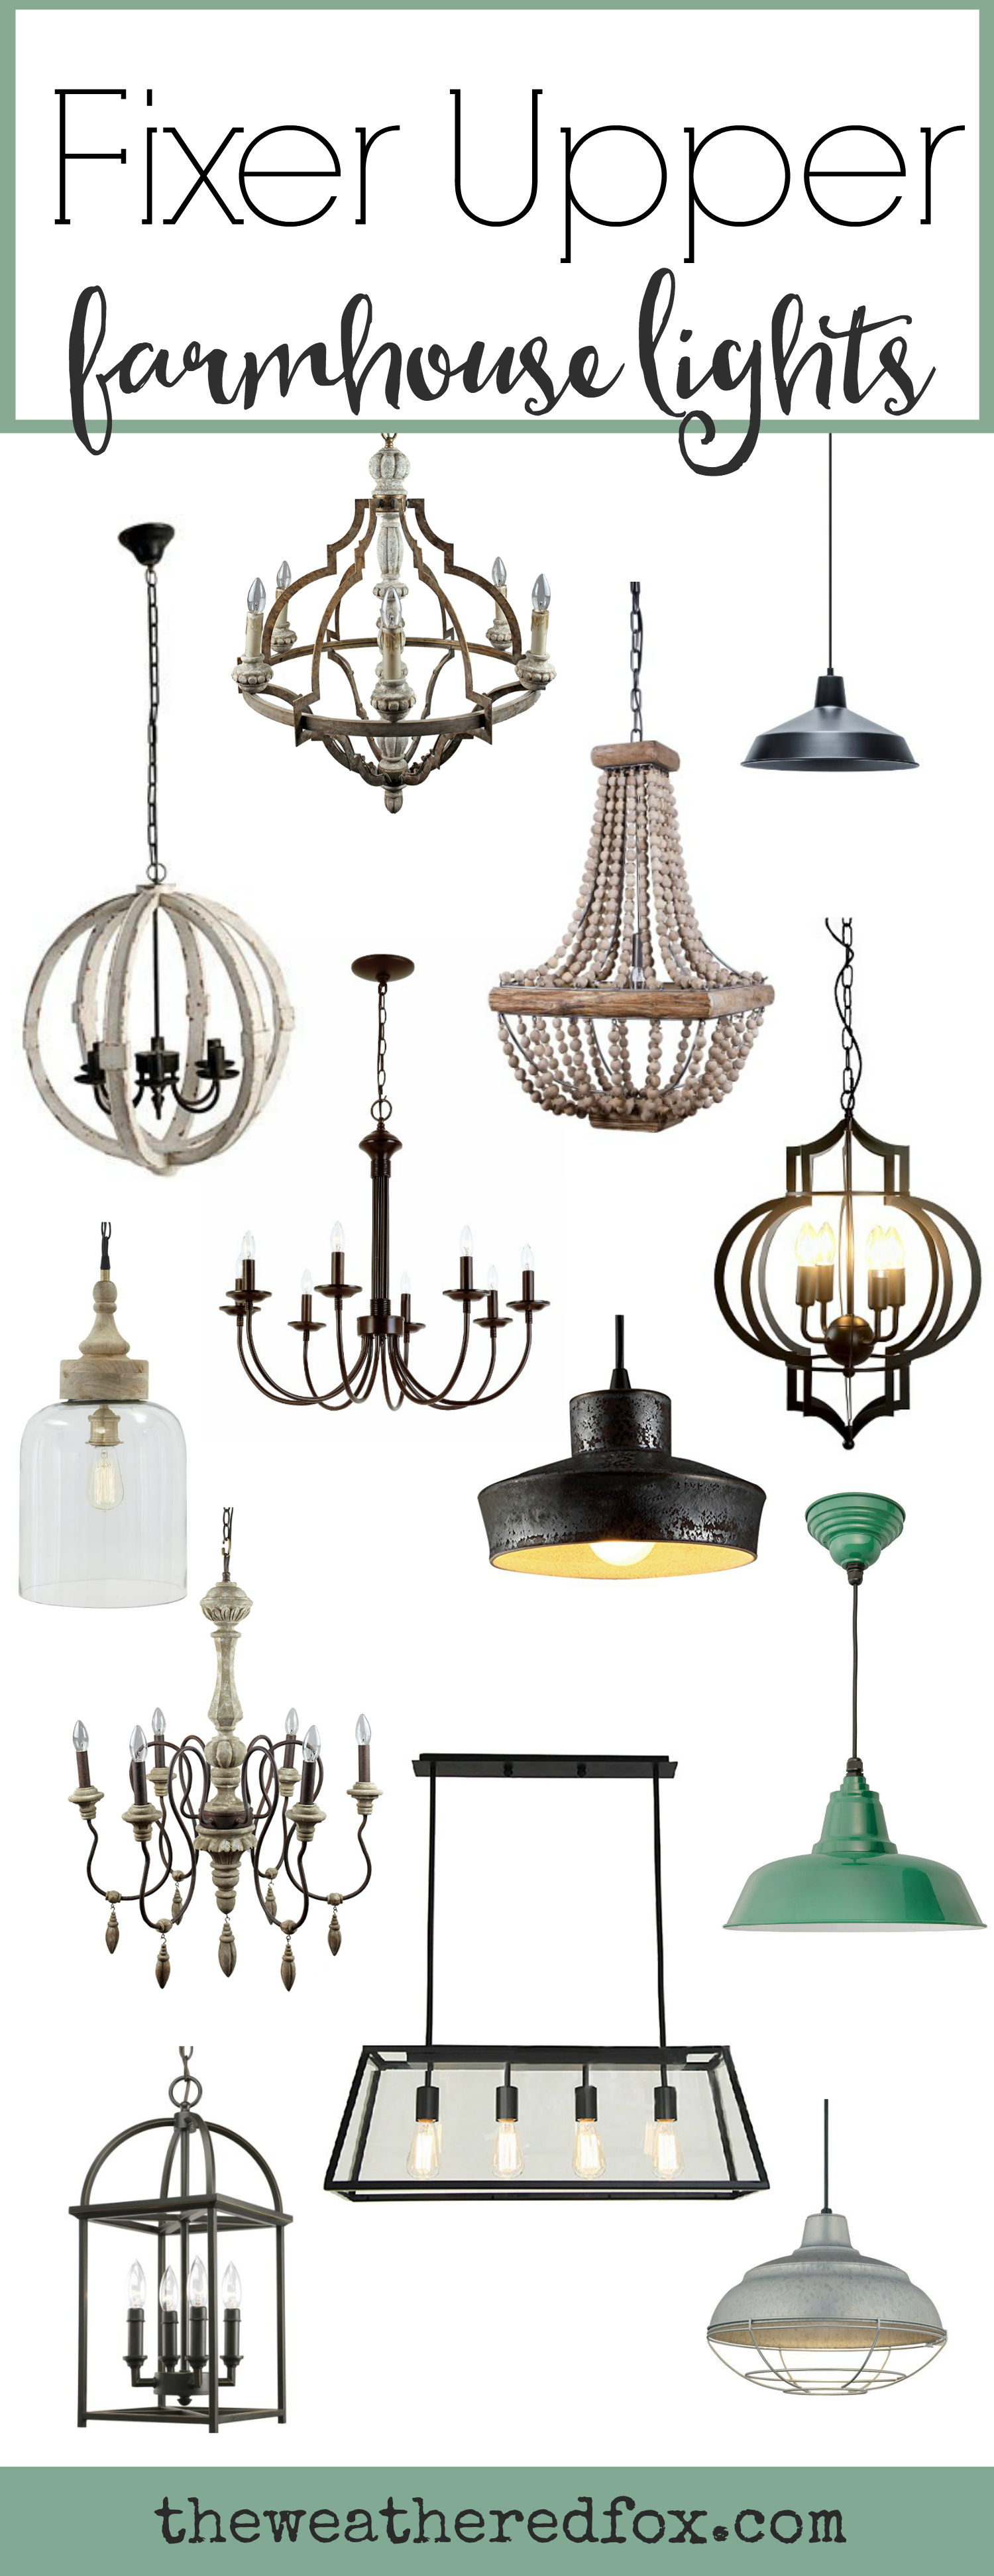 Fixer Upper Lighting for Your Home - The Weathered Fox